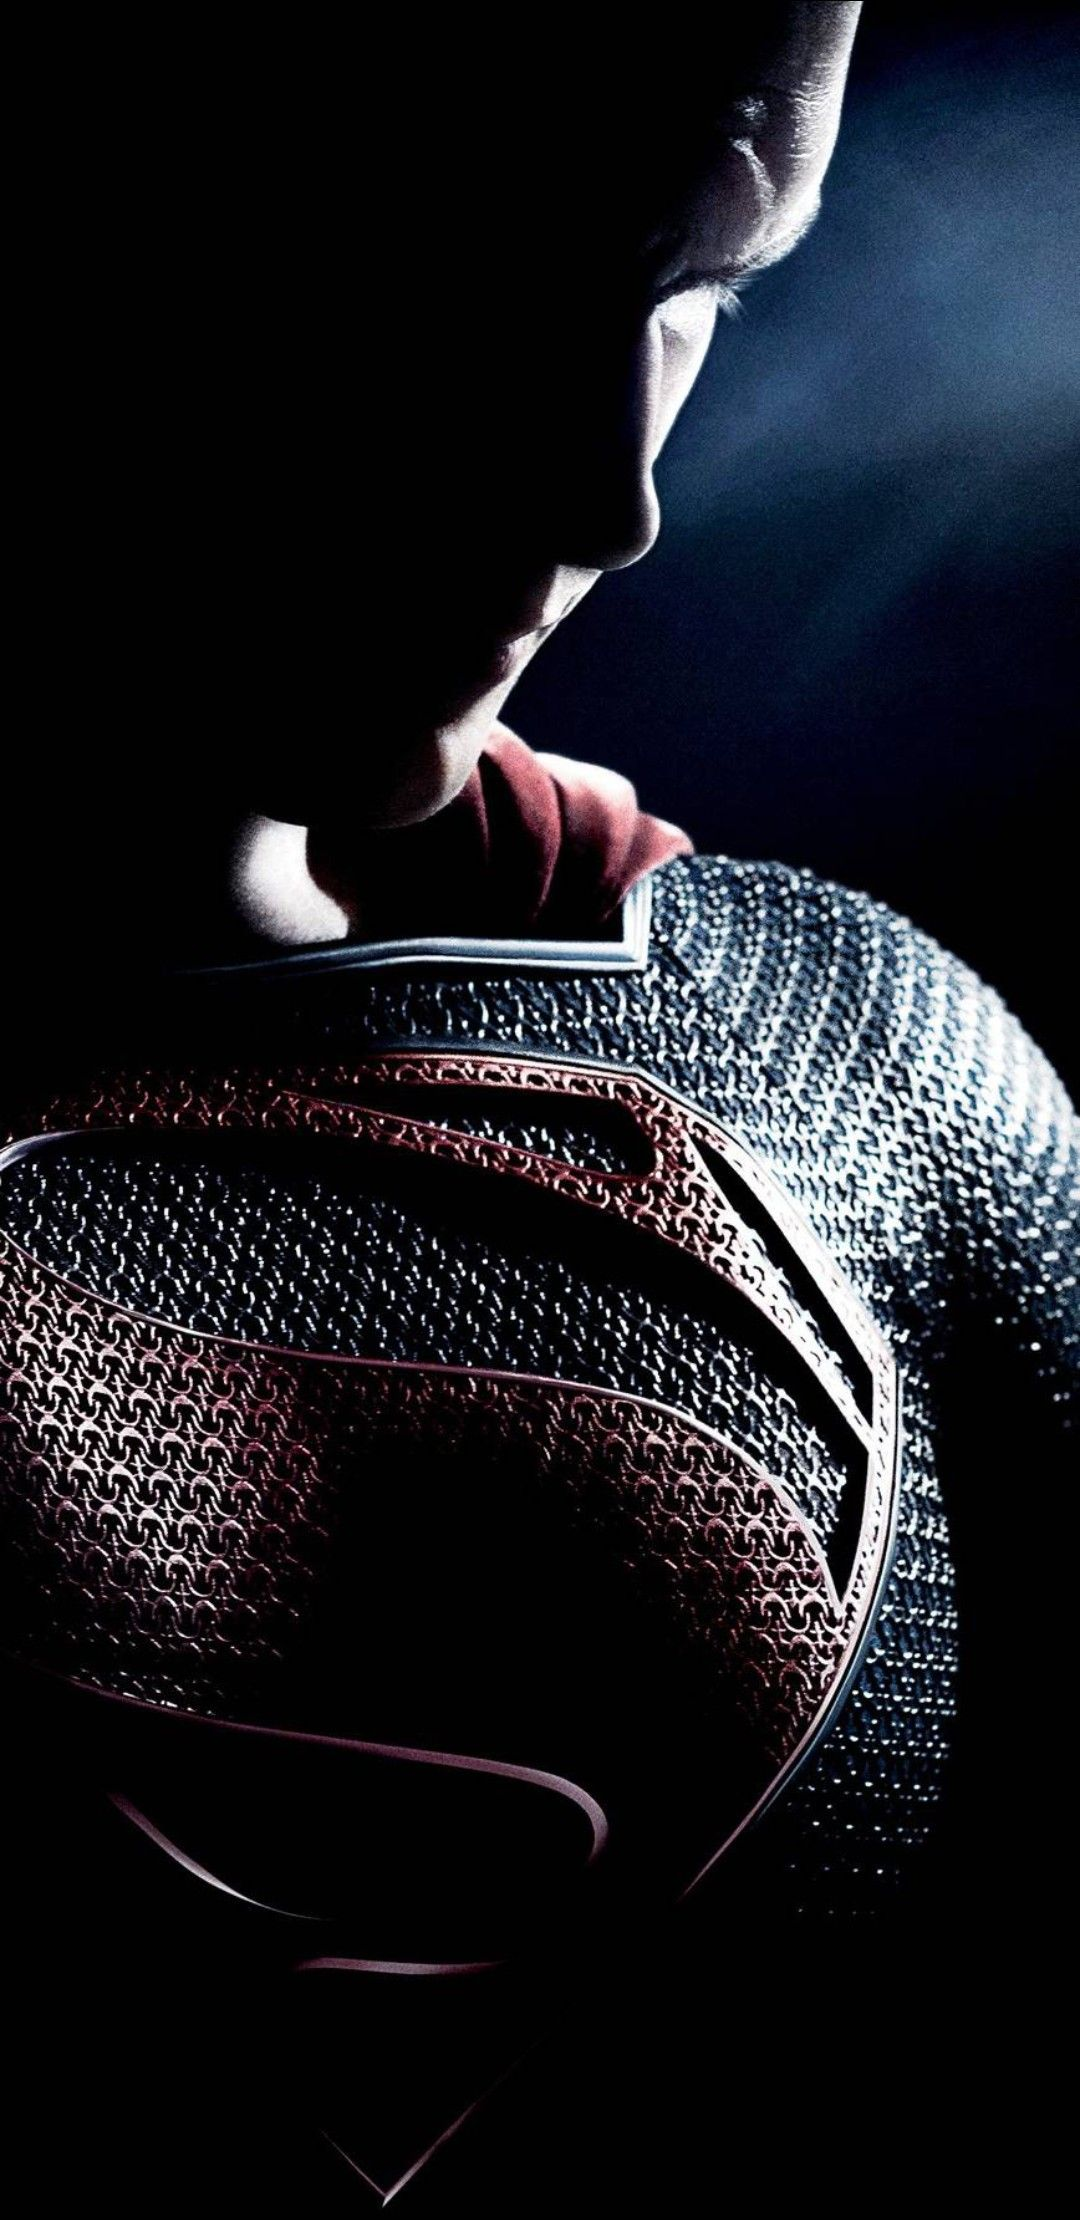 Man Of Steel Textless Poster Zedge Superman Hd Wallpaper Man